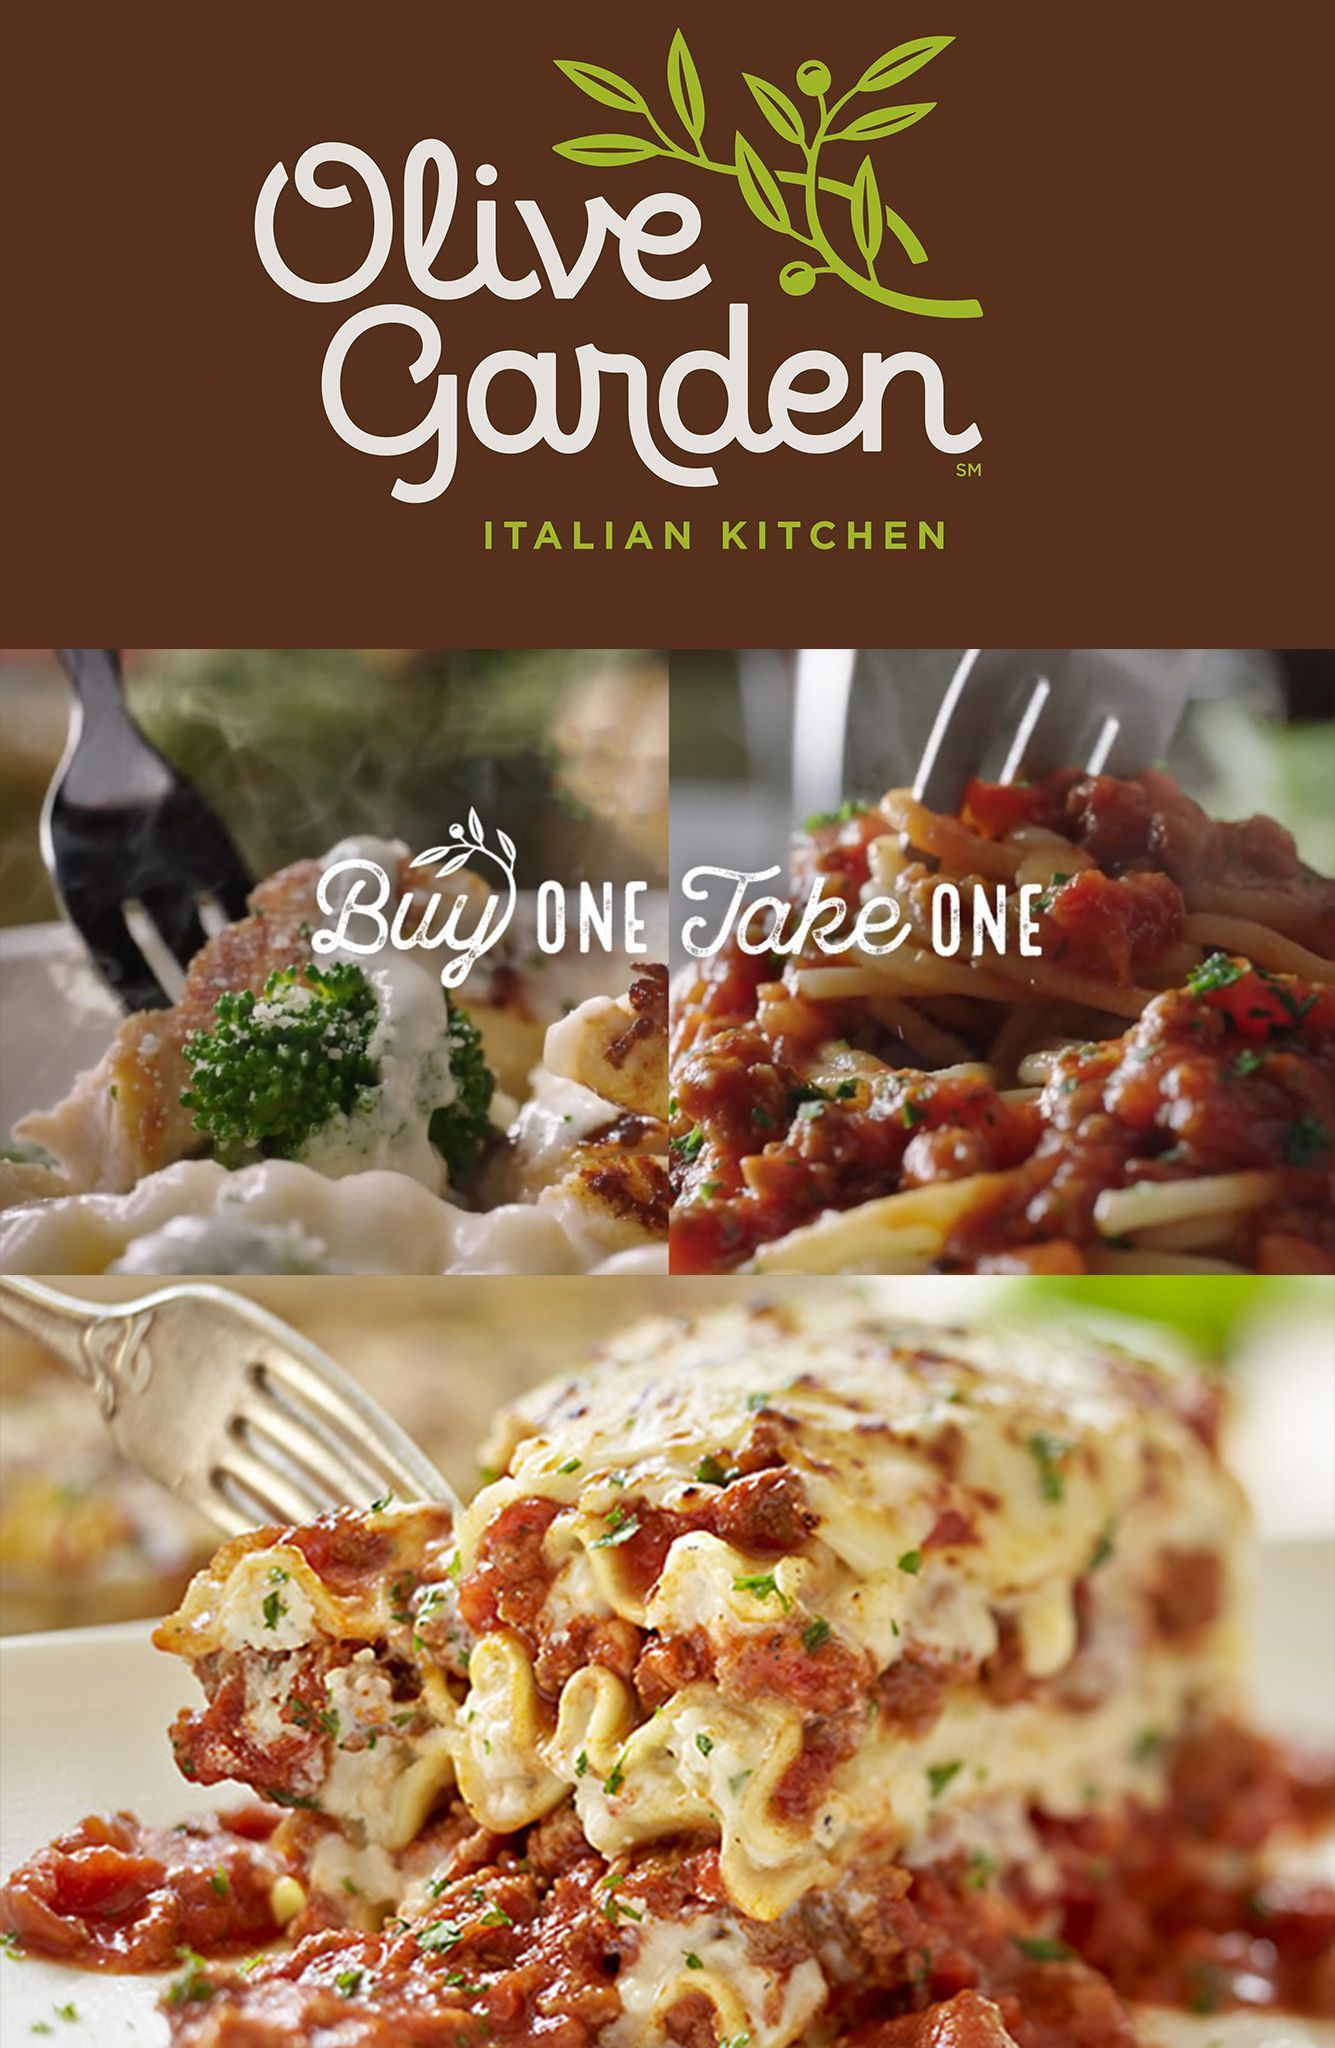 Olive Garden: Buy One Take One Deal Is BACK!!! | Coupons, Freebies ...